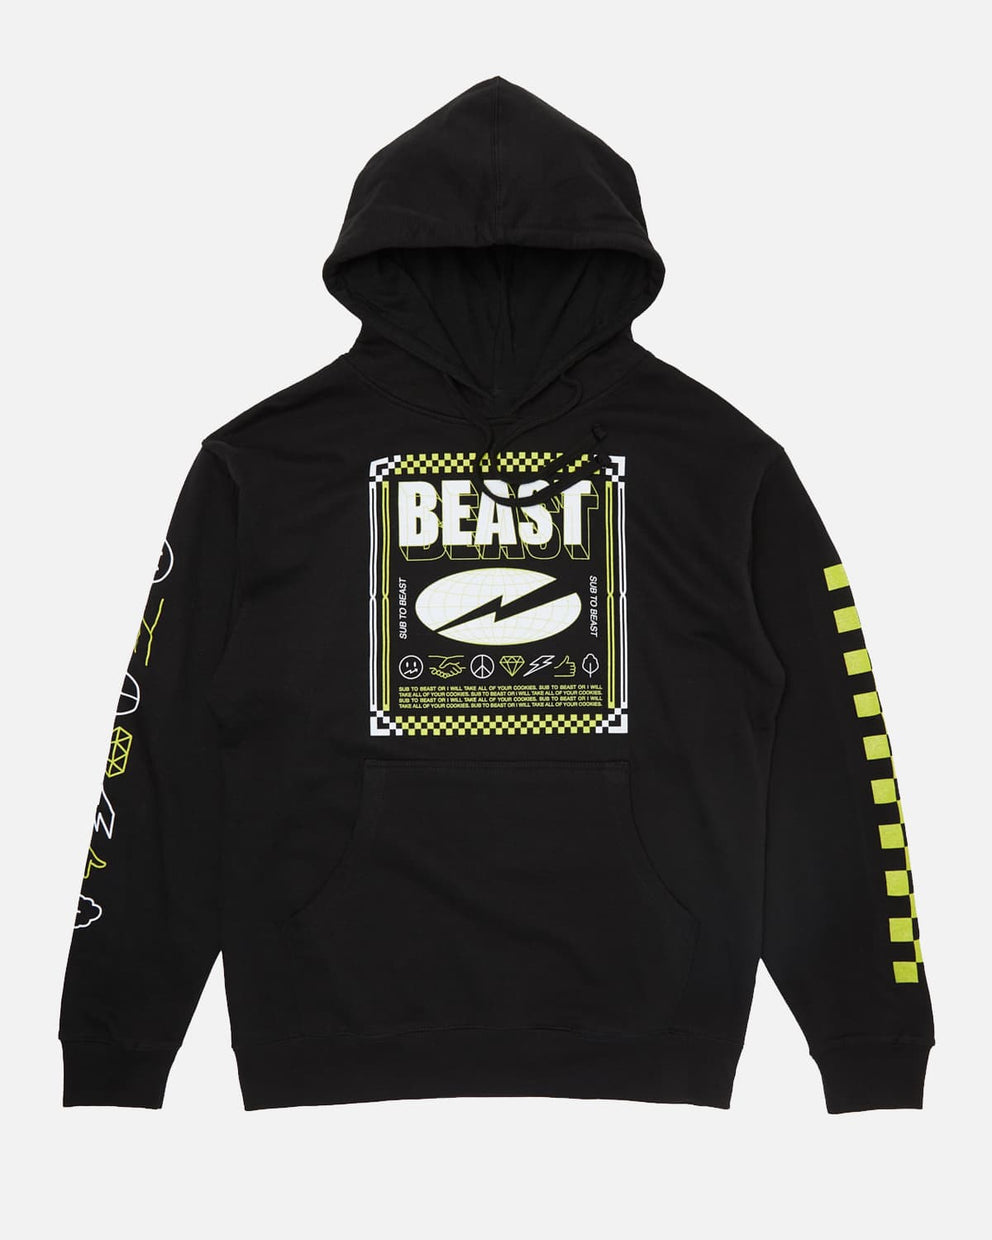 'Checkered Beast' Pullover Hoodie